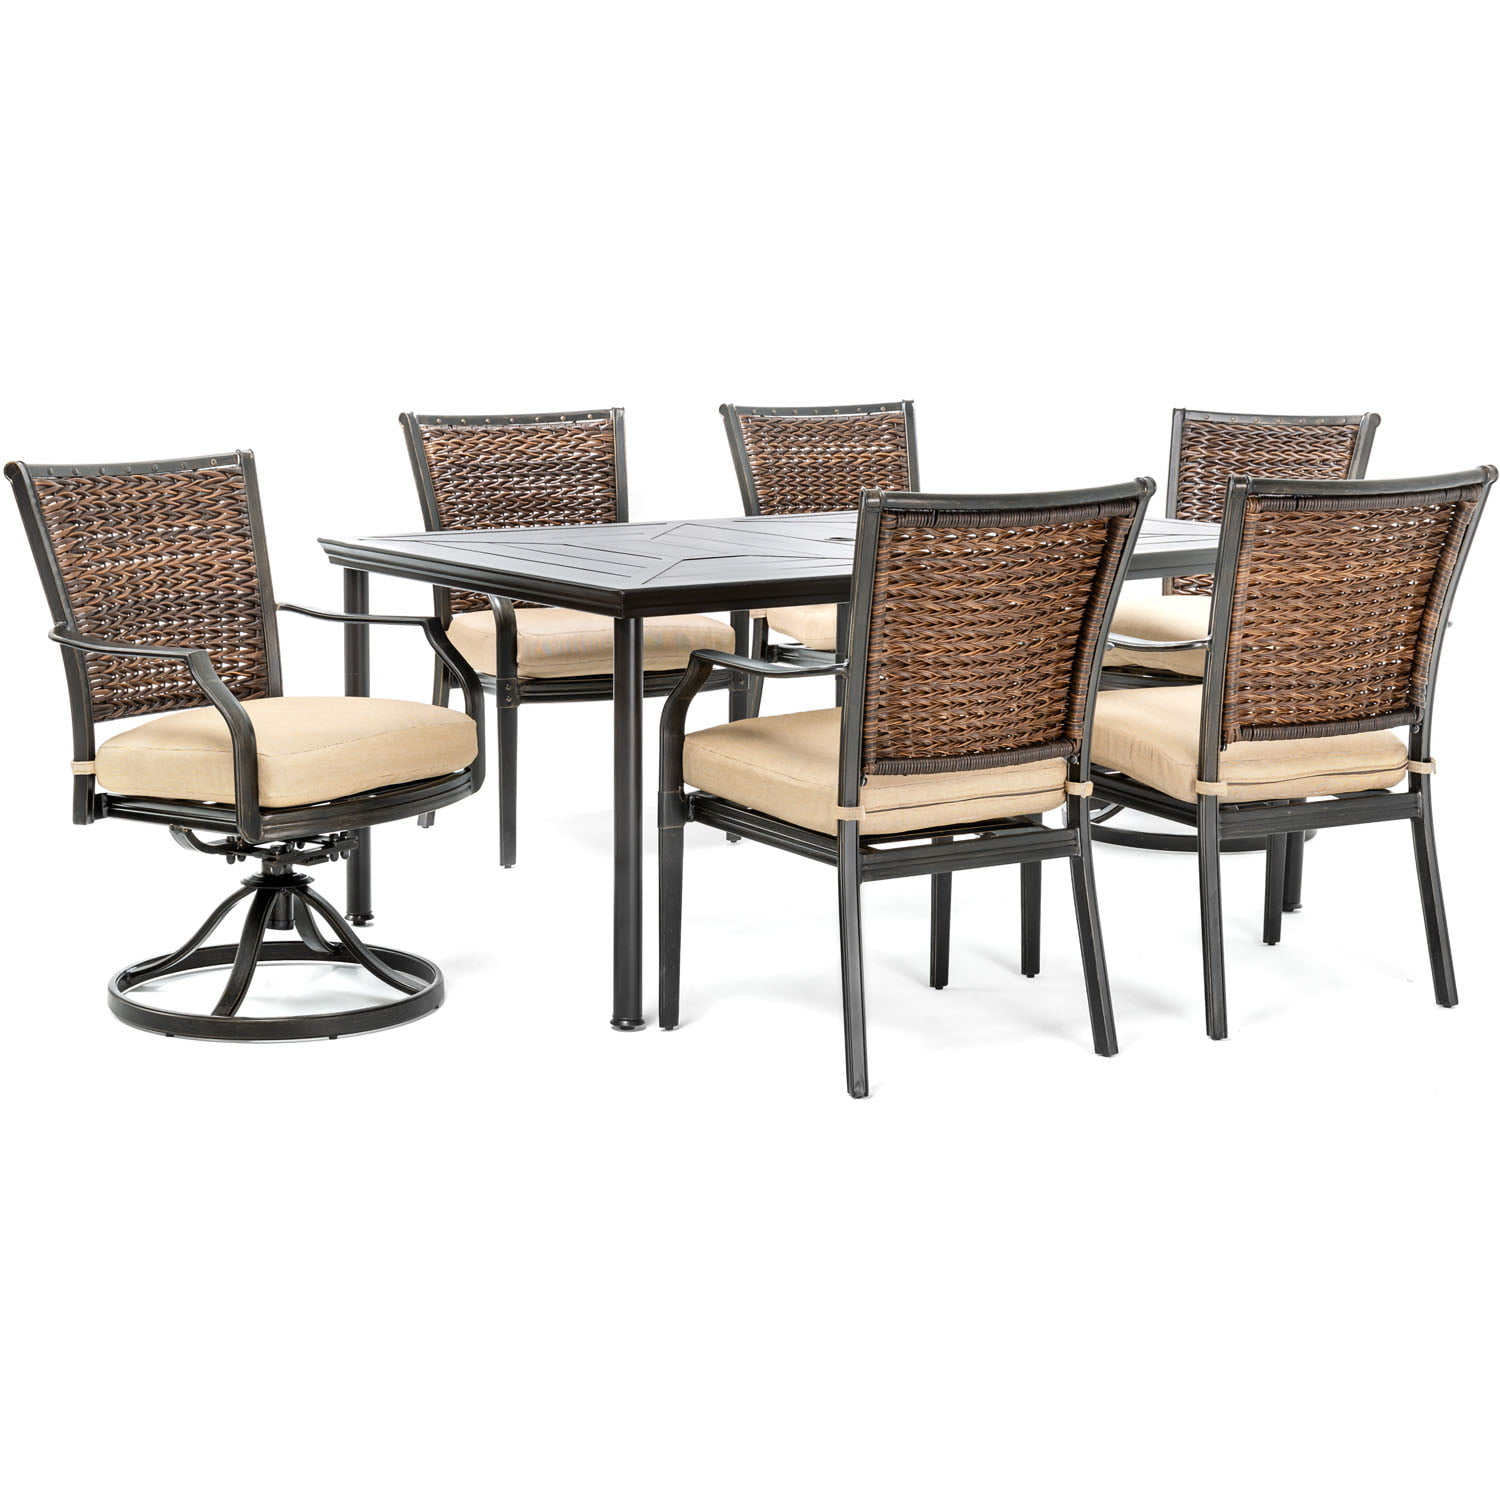 Breckenridge 4 Piece Patio Furniture Set Two Swivel: Hanover Mercer 7-Piece Patio Dining Set In Country Cork